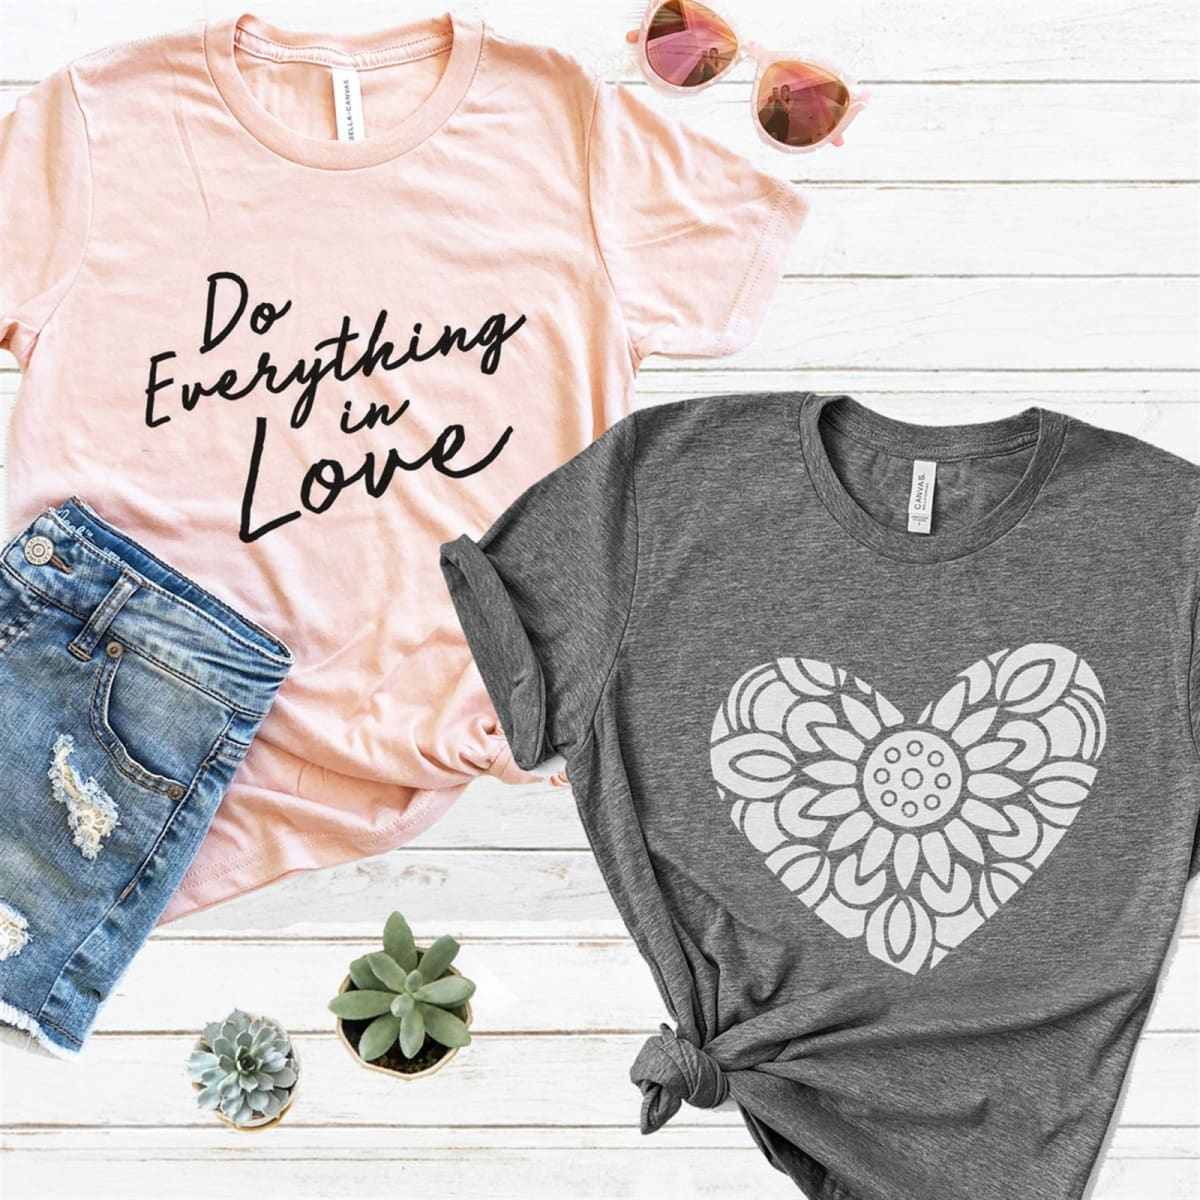 422a6e17b Fit & Details. UNISEX, Relaxed Fit. Read More. Everyday Love Graphic Tees | Rose  Gold